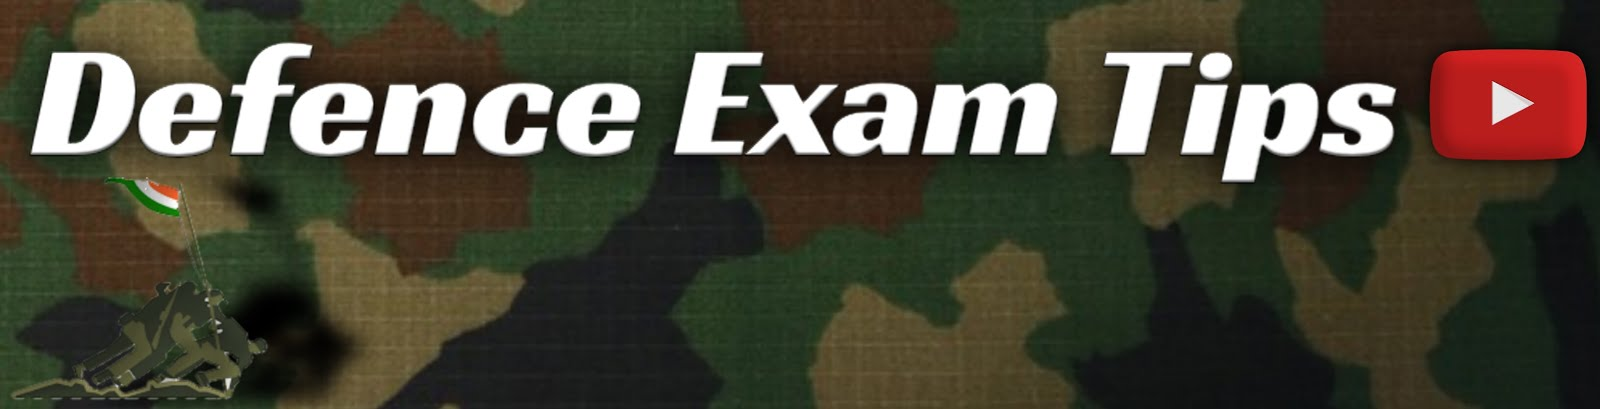 Defence Exam Tips - Blog For Defense Entrance Exams